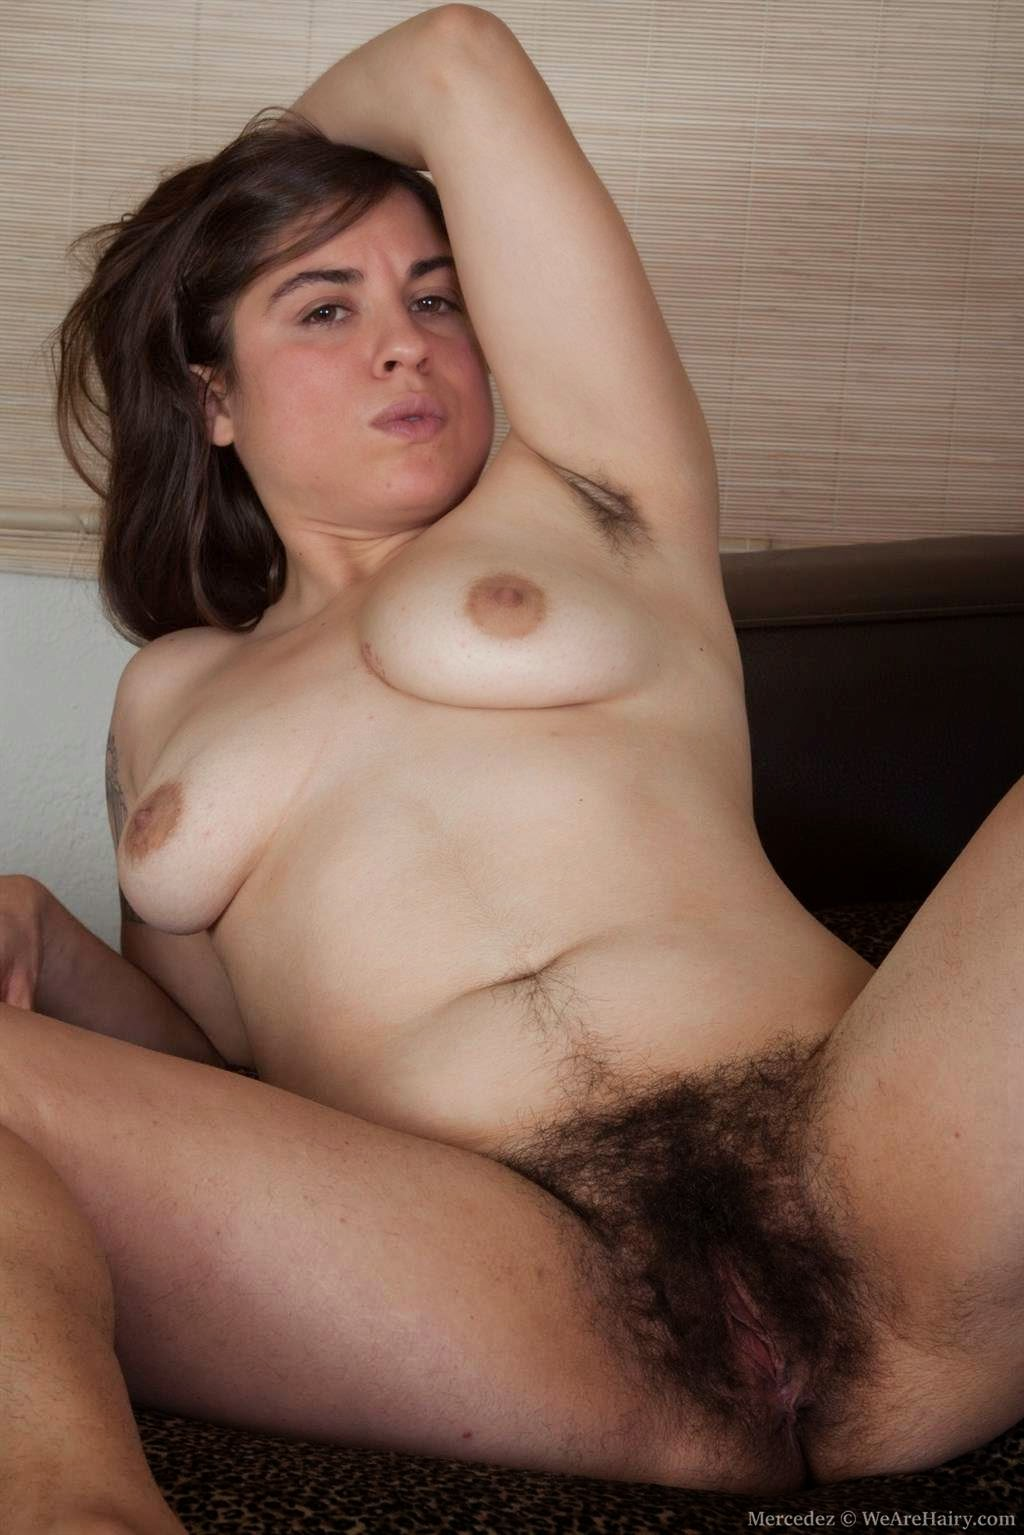 I love hairy women lady